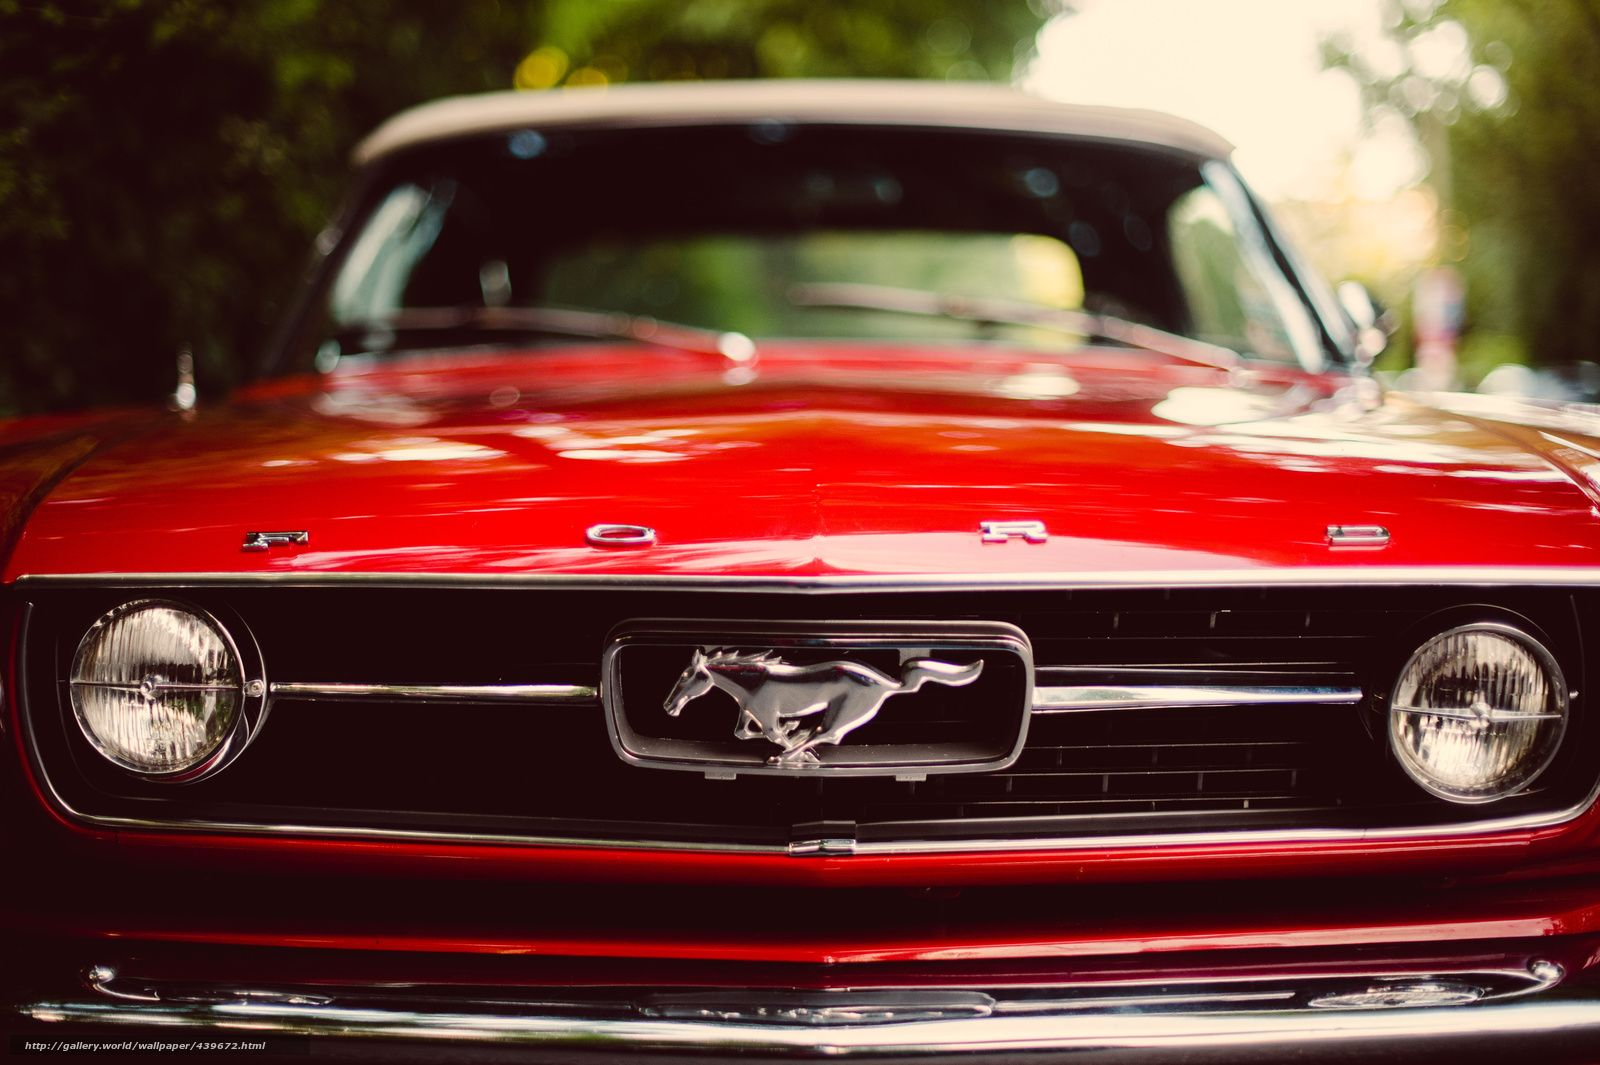 Vintage Mustang Wallpapers Top Free Vintage Mustang Backgrounds Wallpaperaccess